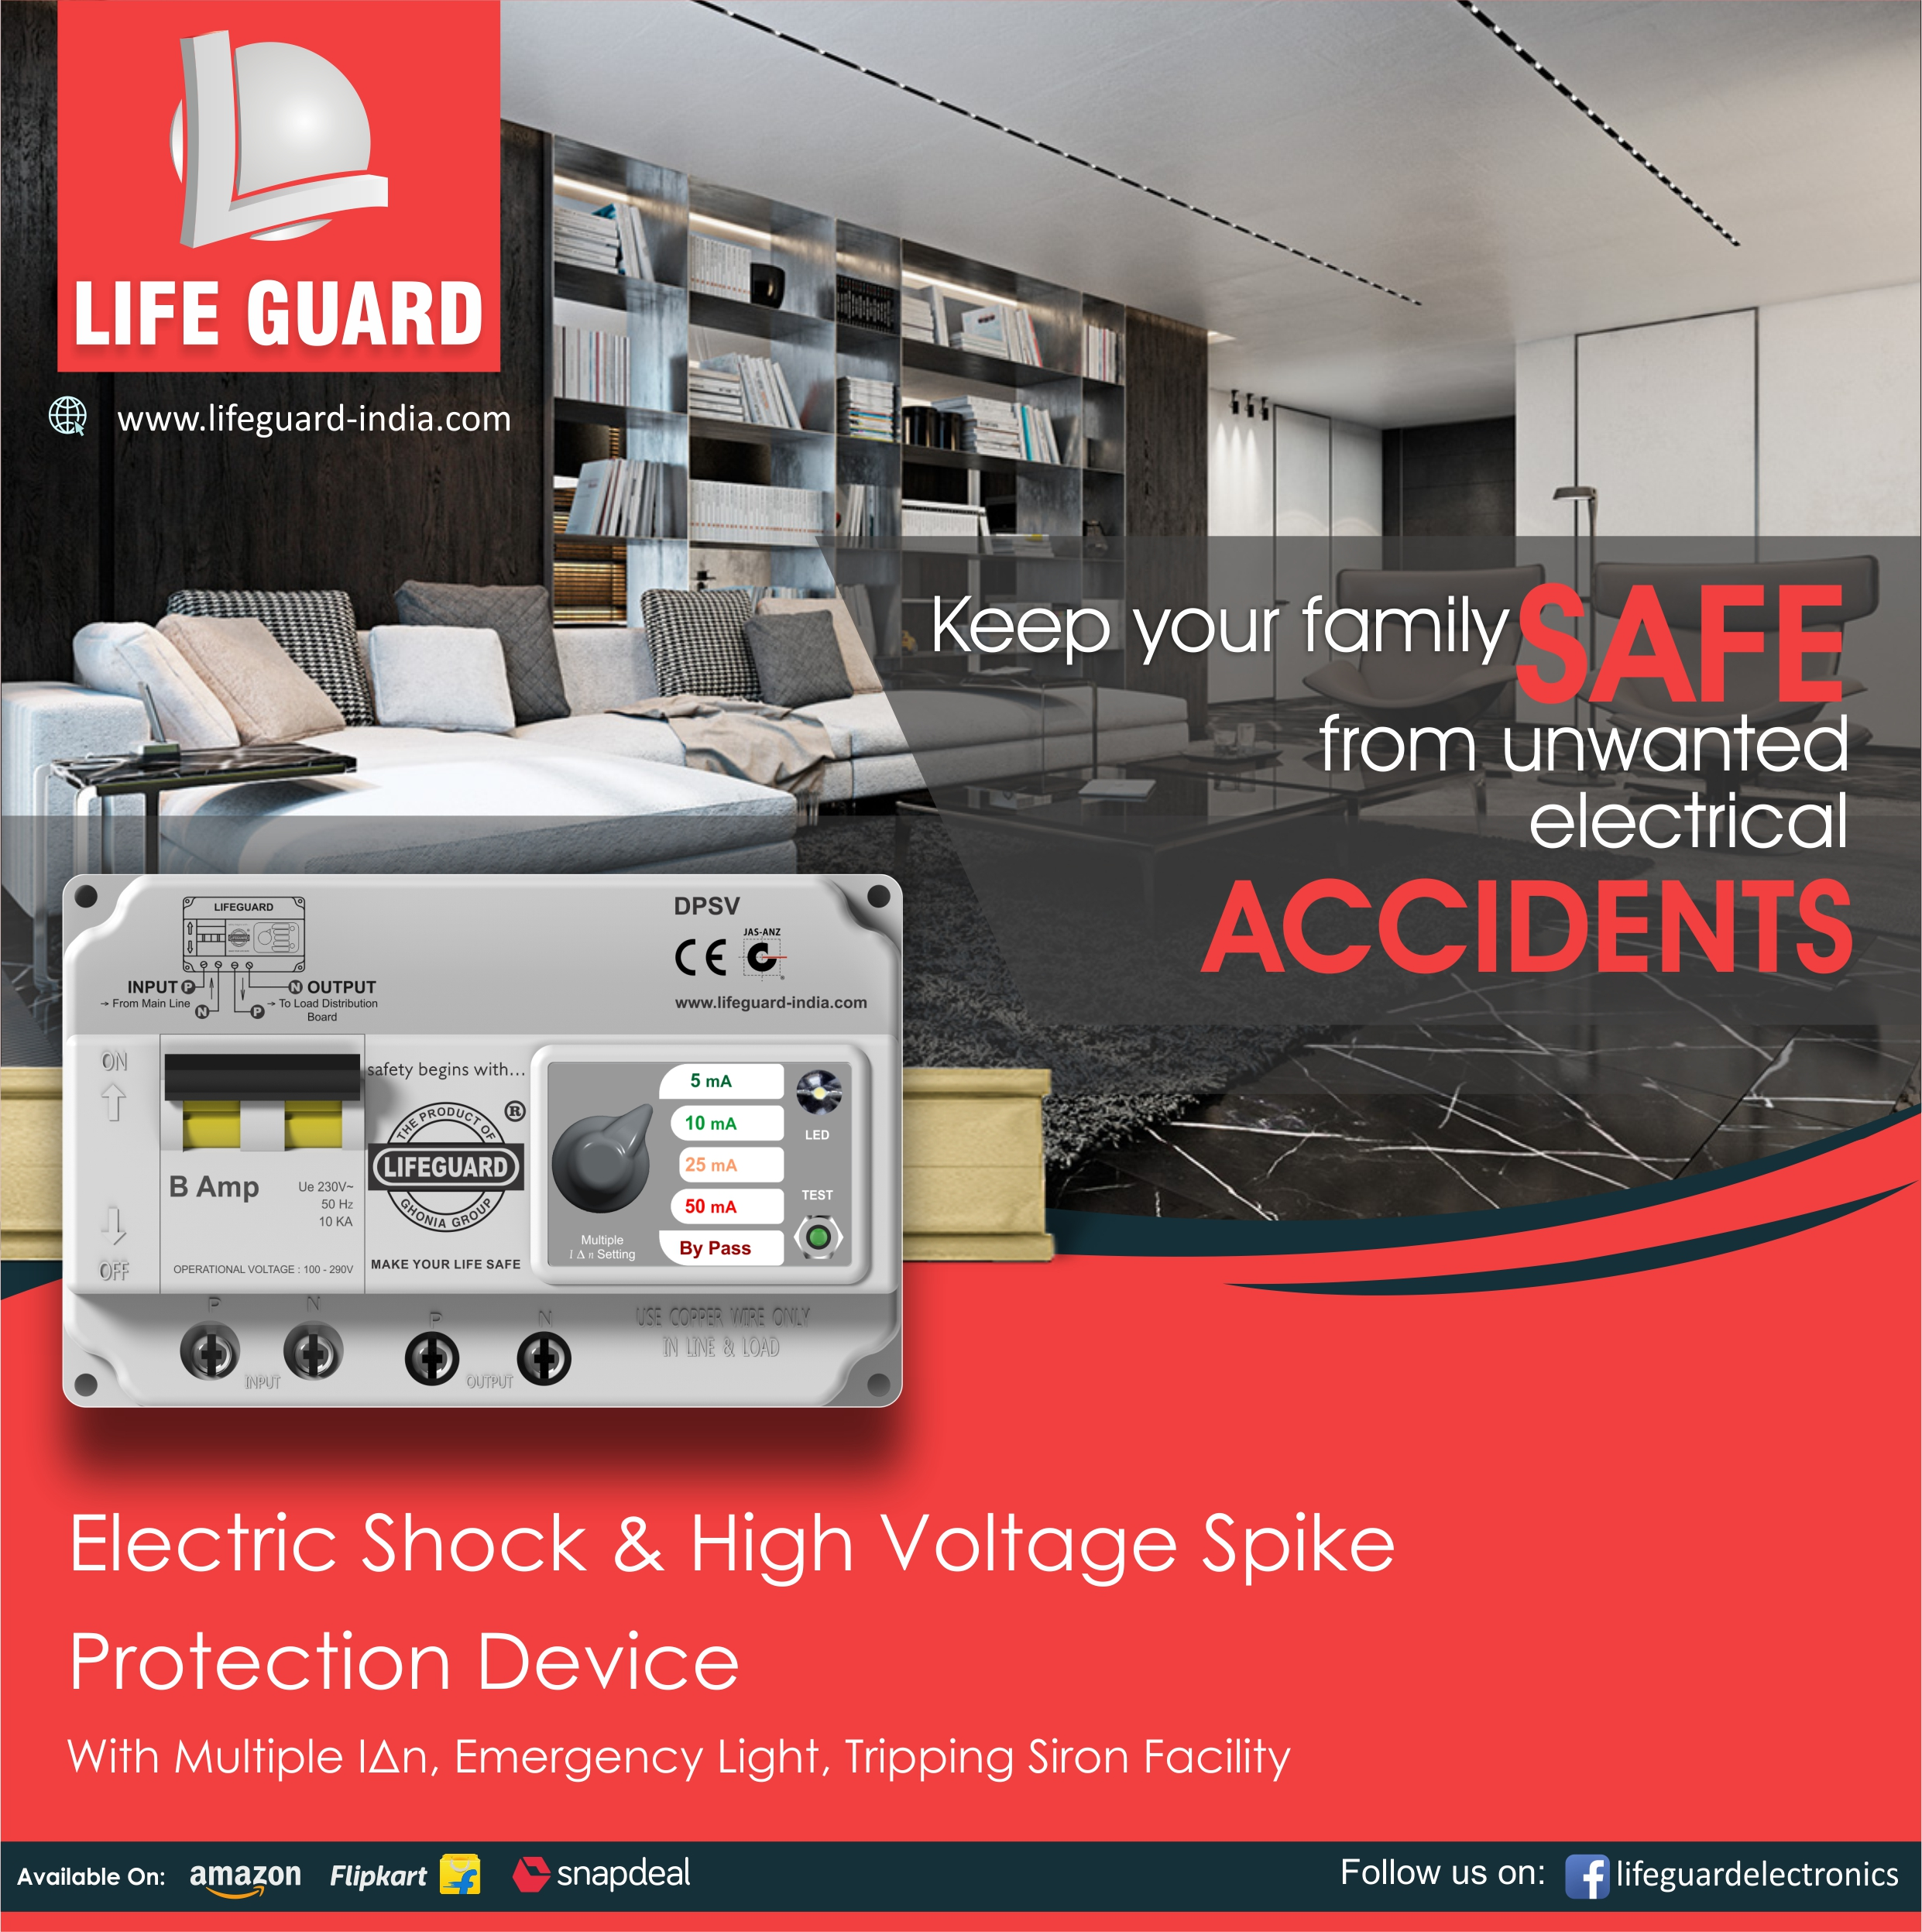 Lifeguard Electronics India Pvt Ltd Voltage Protector Circuit Type Rccb Mcb Functions Protection Against Electric Shock High Short Respect To Ampere Rating Over Load Two Phasing